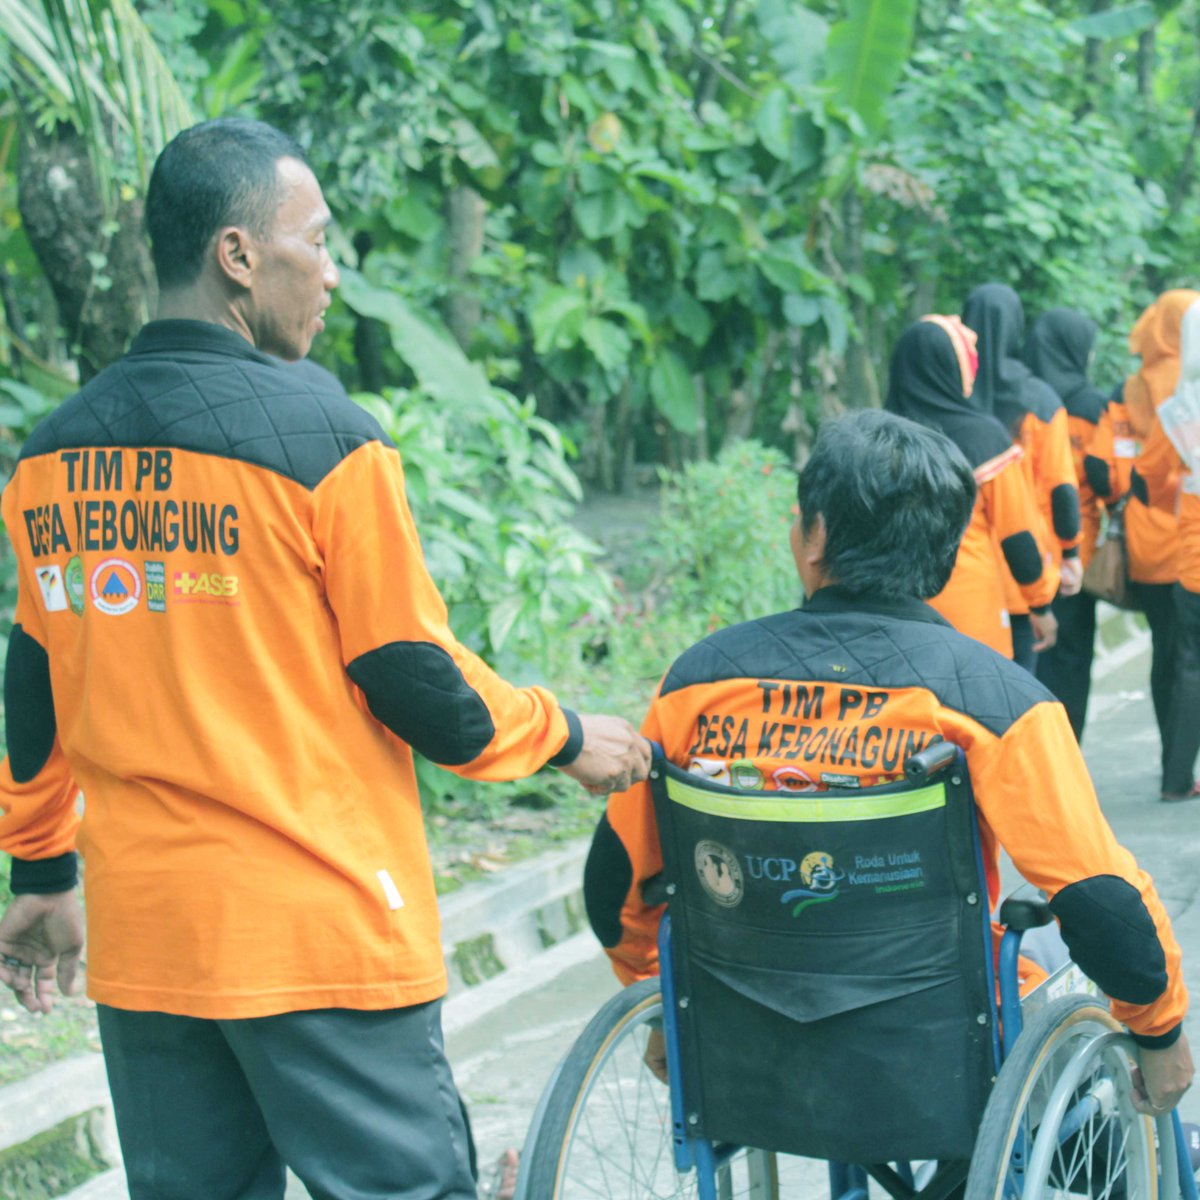 Two disaster management volunteers photographed from behind, one of whom is using a wheelchair.